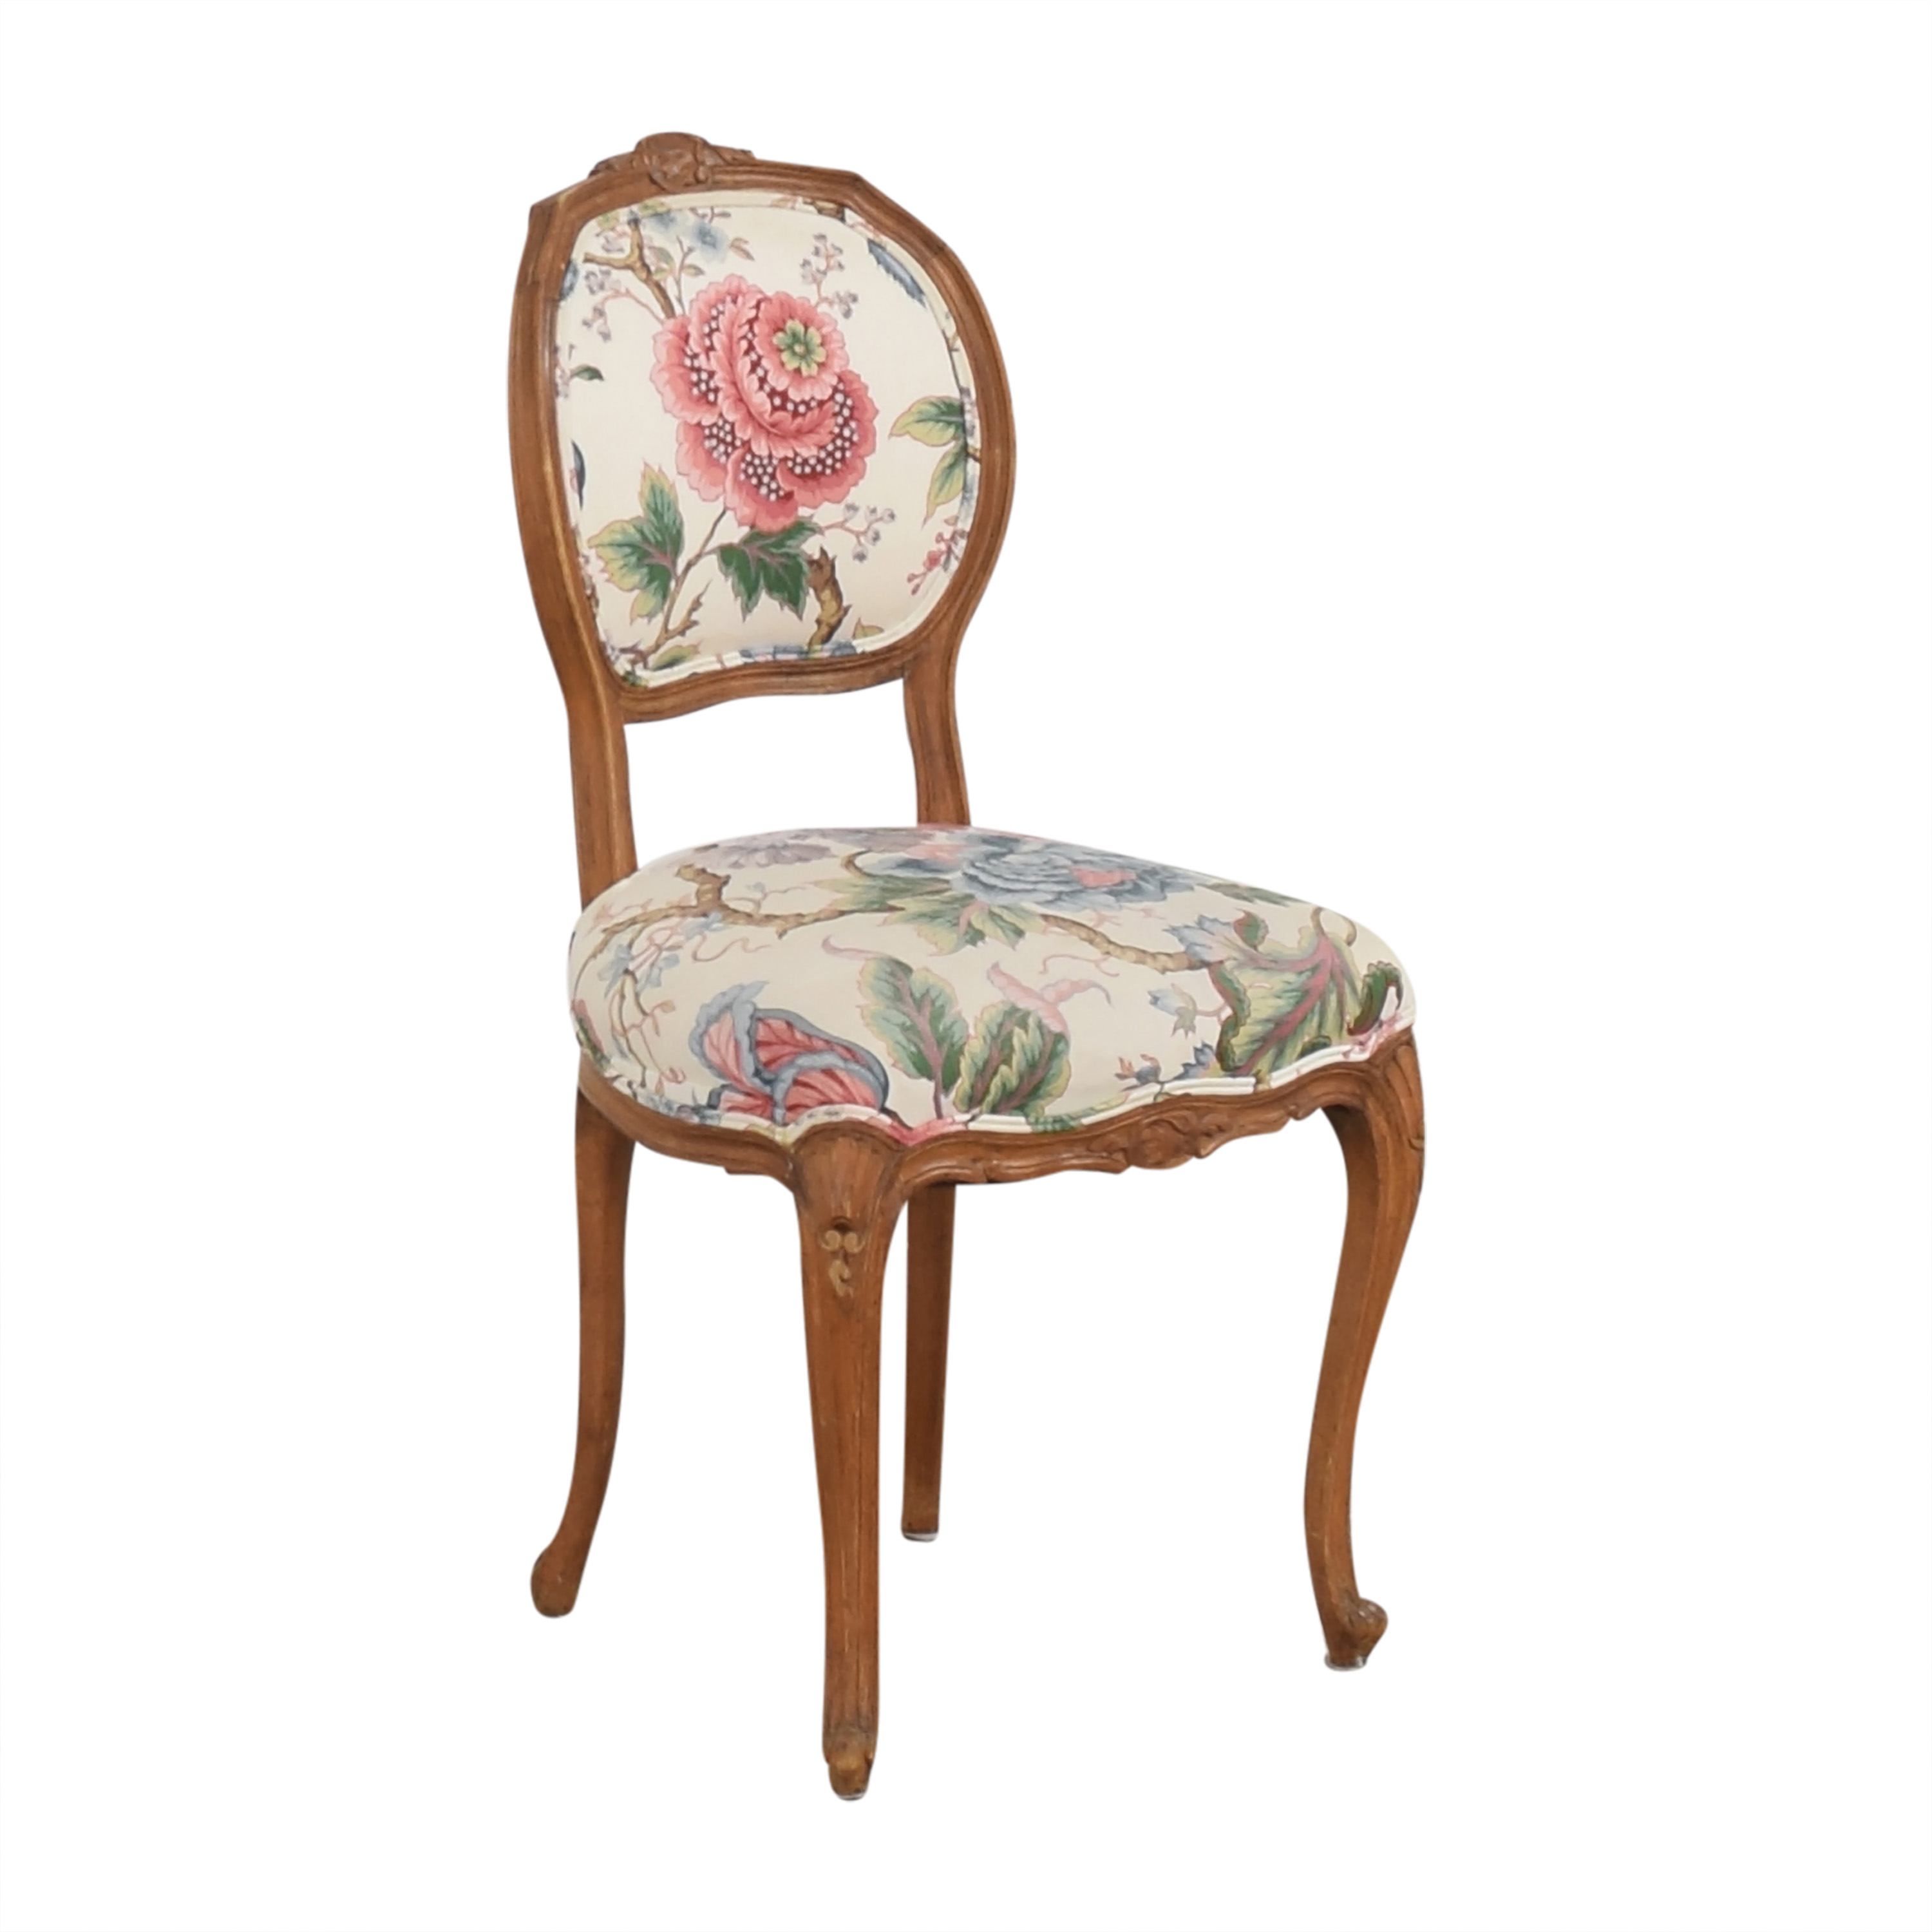 Floral Vintage-Style Upholstered Chair